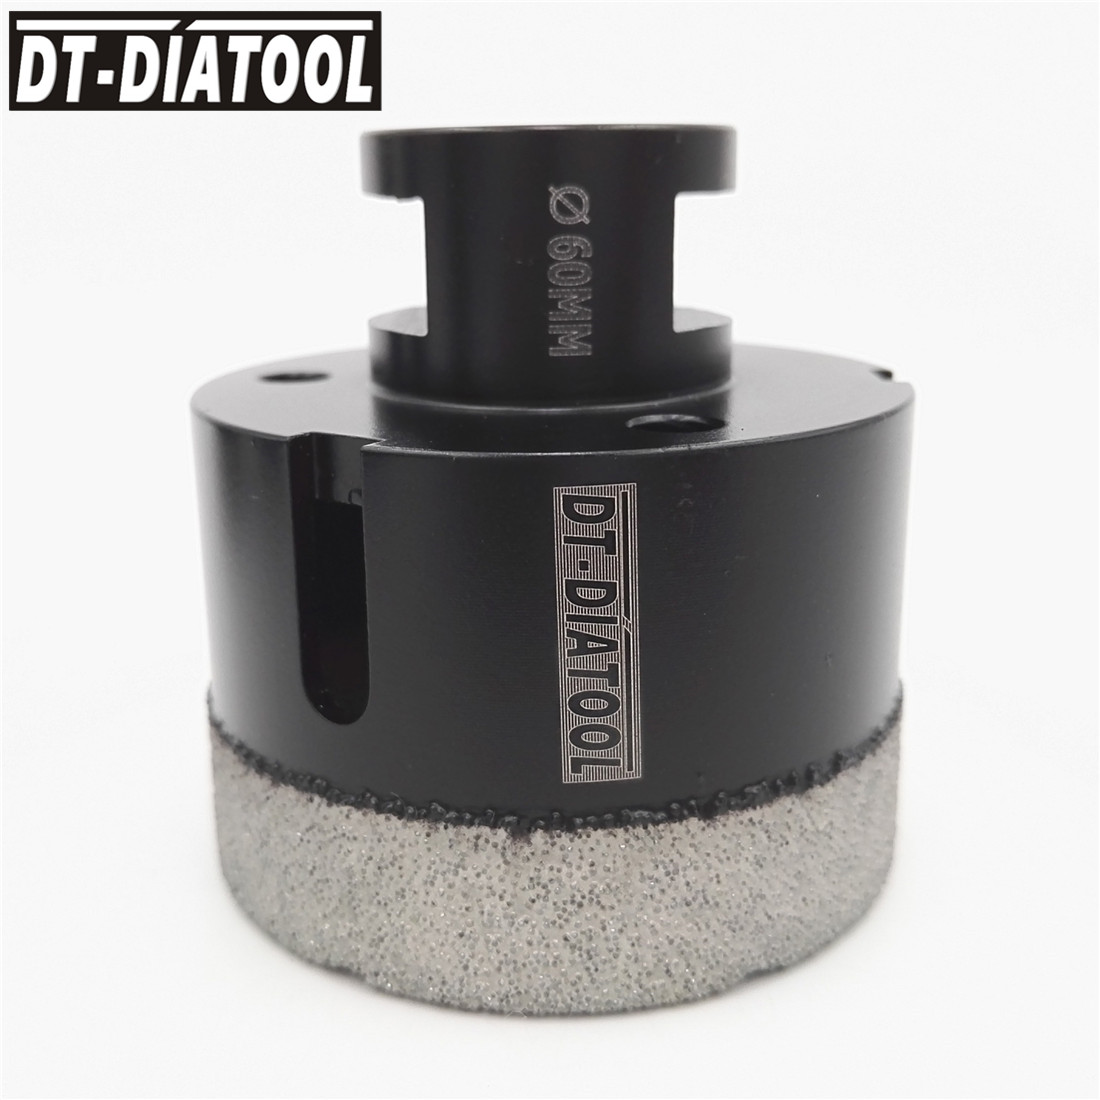 цена на DT-DIATOOL Diameter 60mm Professional Dry Vacuum Brazed Diamond Drill Core Bits for granite marble tile Hole Saw with M14 Thread